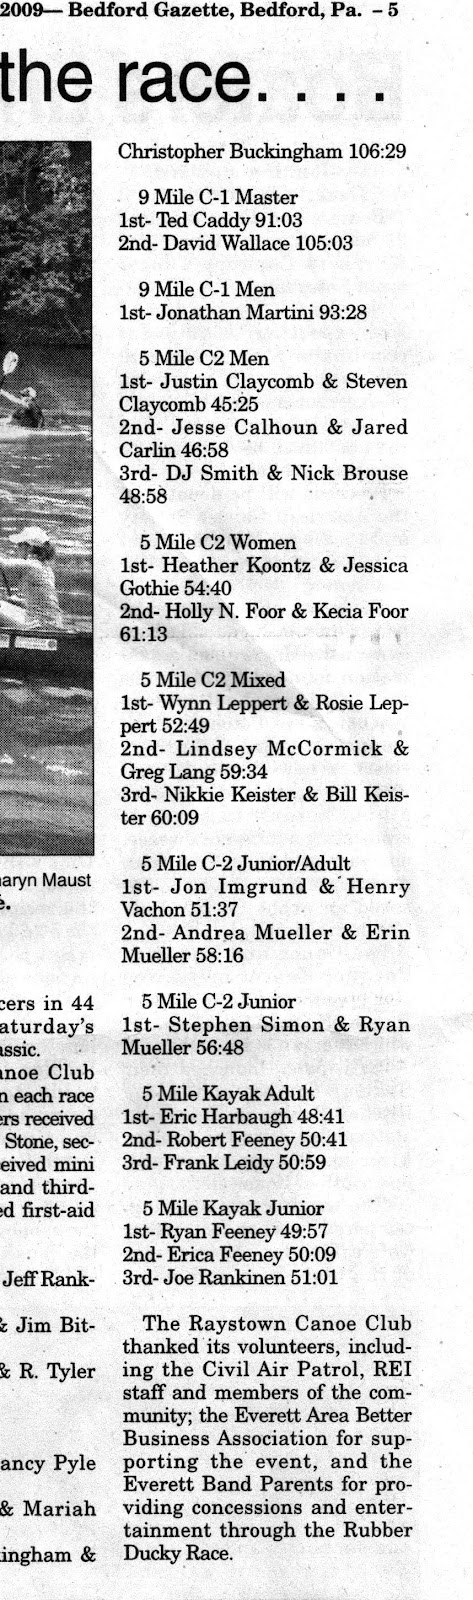 2009 Race Article & Results